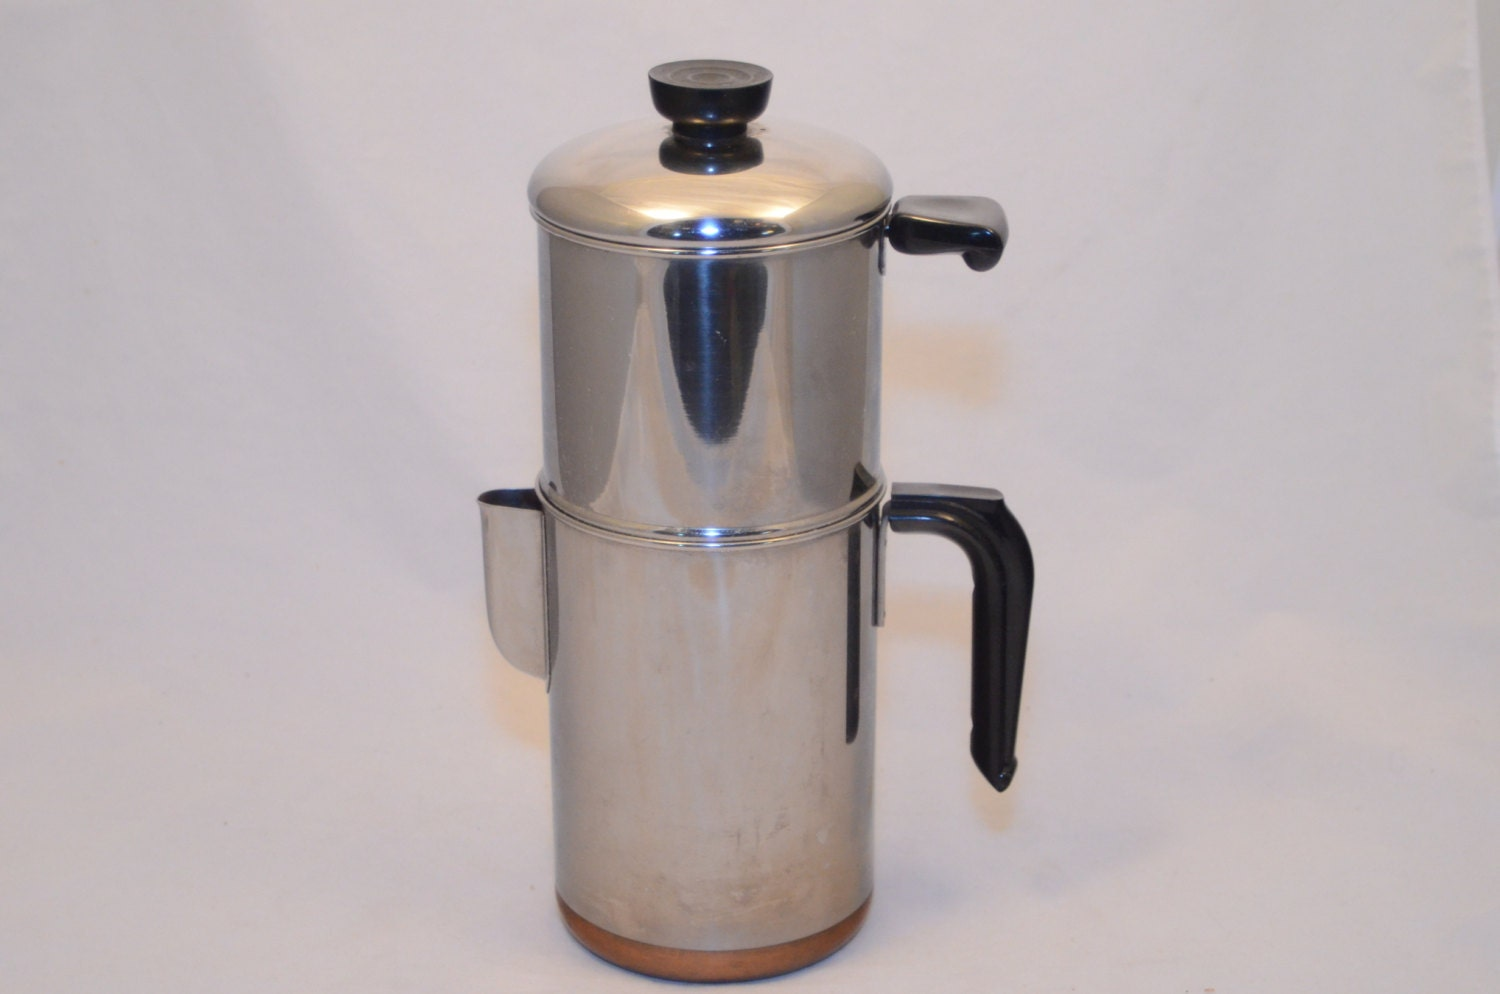 Old Drip Coffee Maker : Vintage 1960s Revere Ware Drip-O-Lator 8 cup Coffee Maker